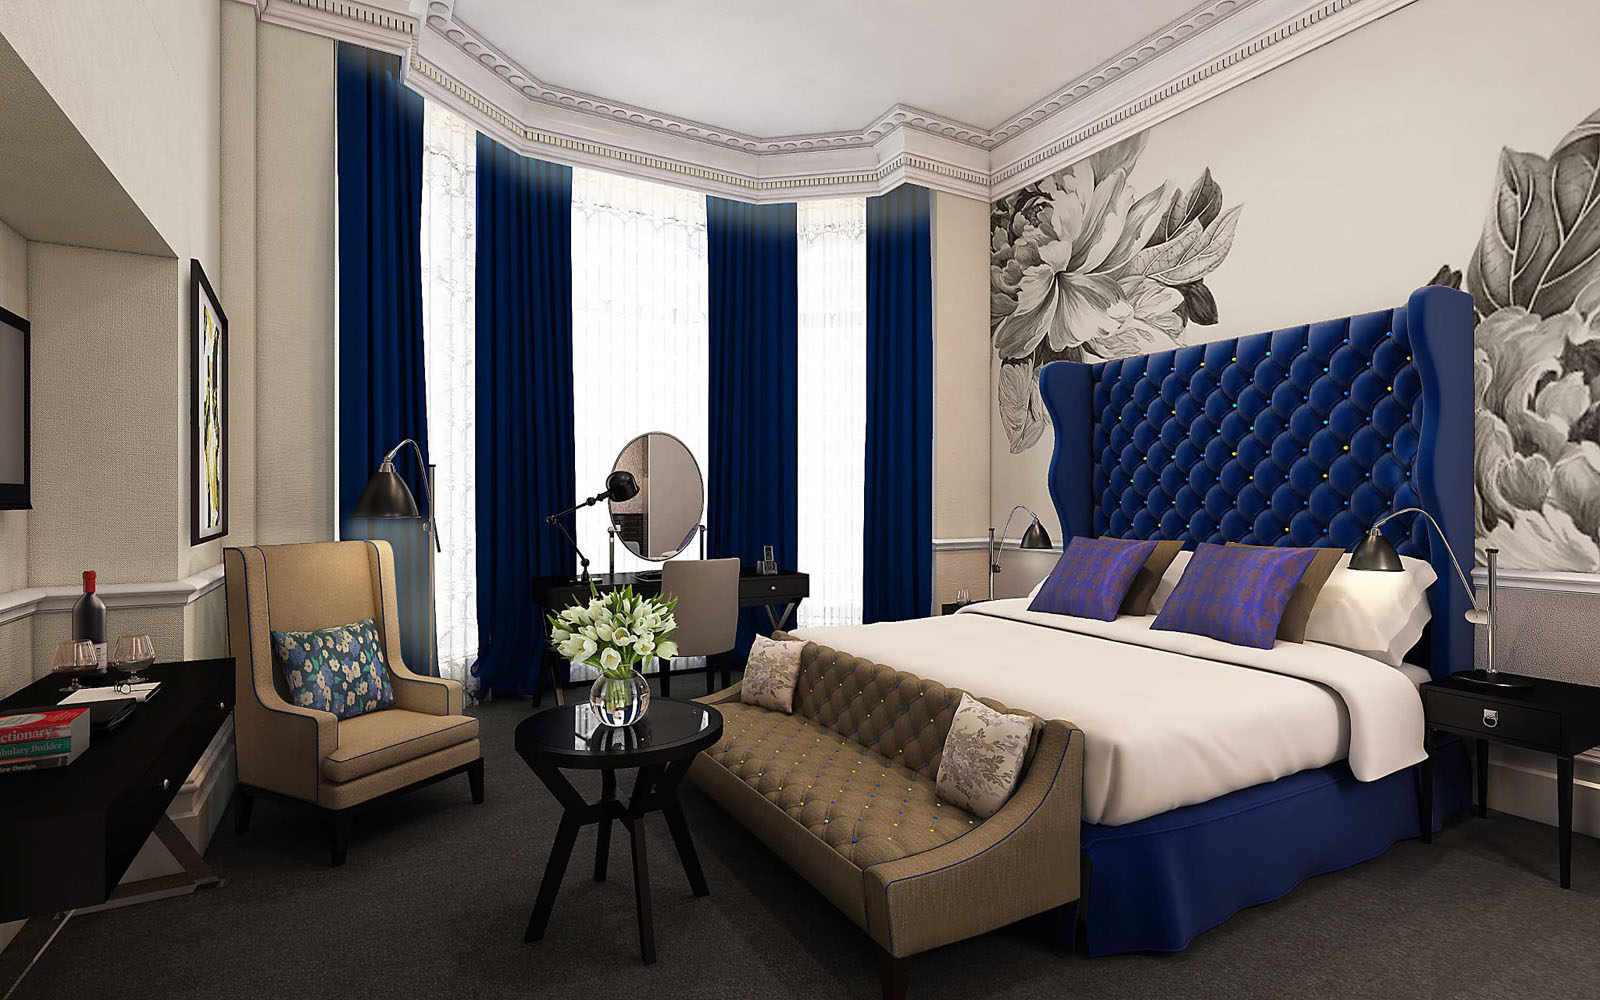 Modern Victorian Architecture the ampersand hotel london - victorian architecture with modern